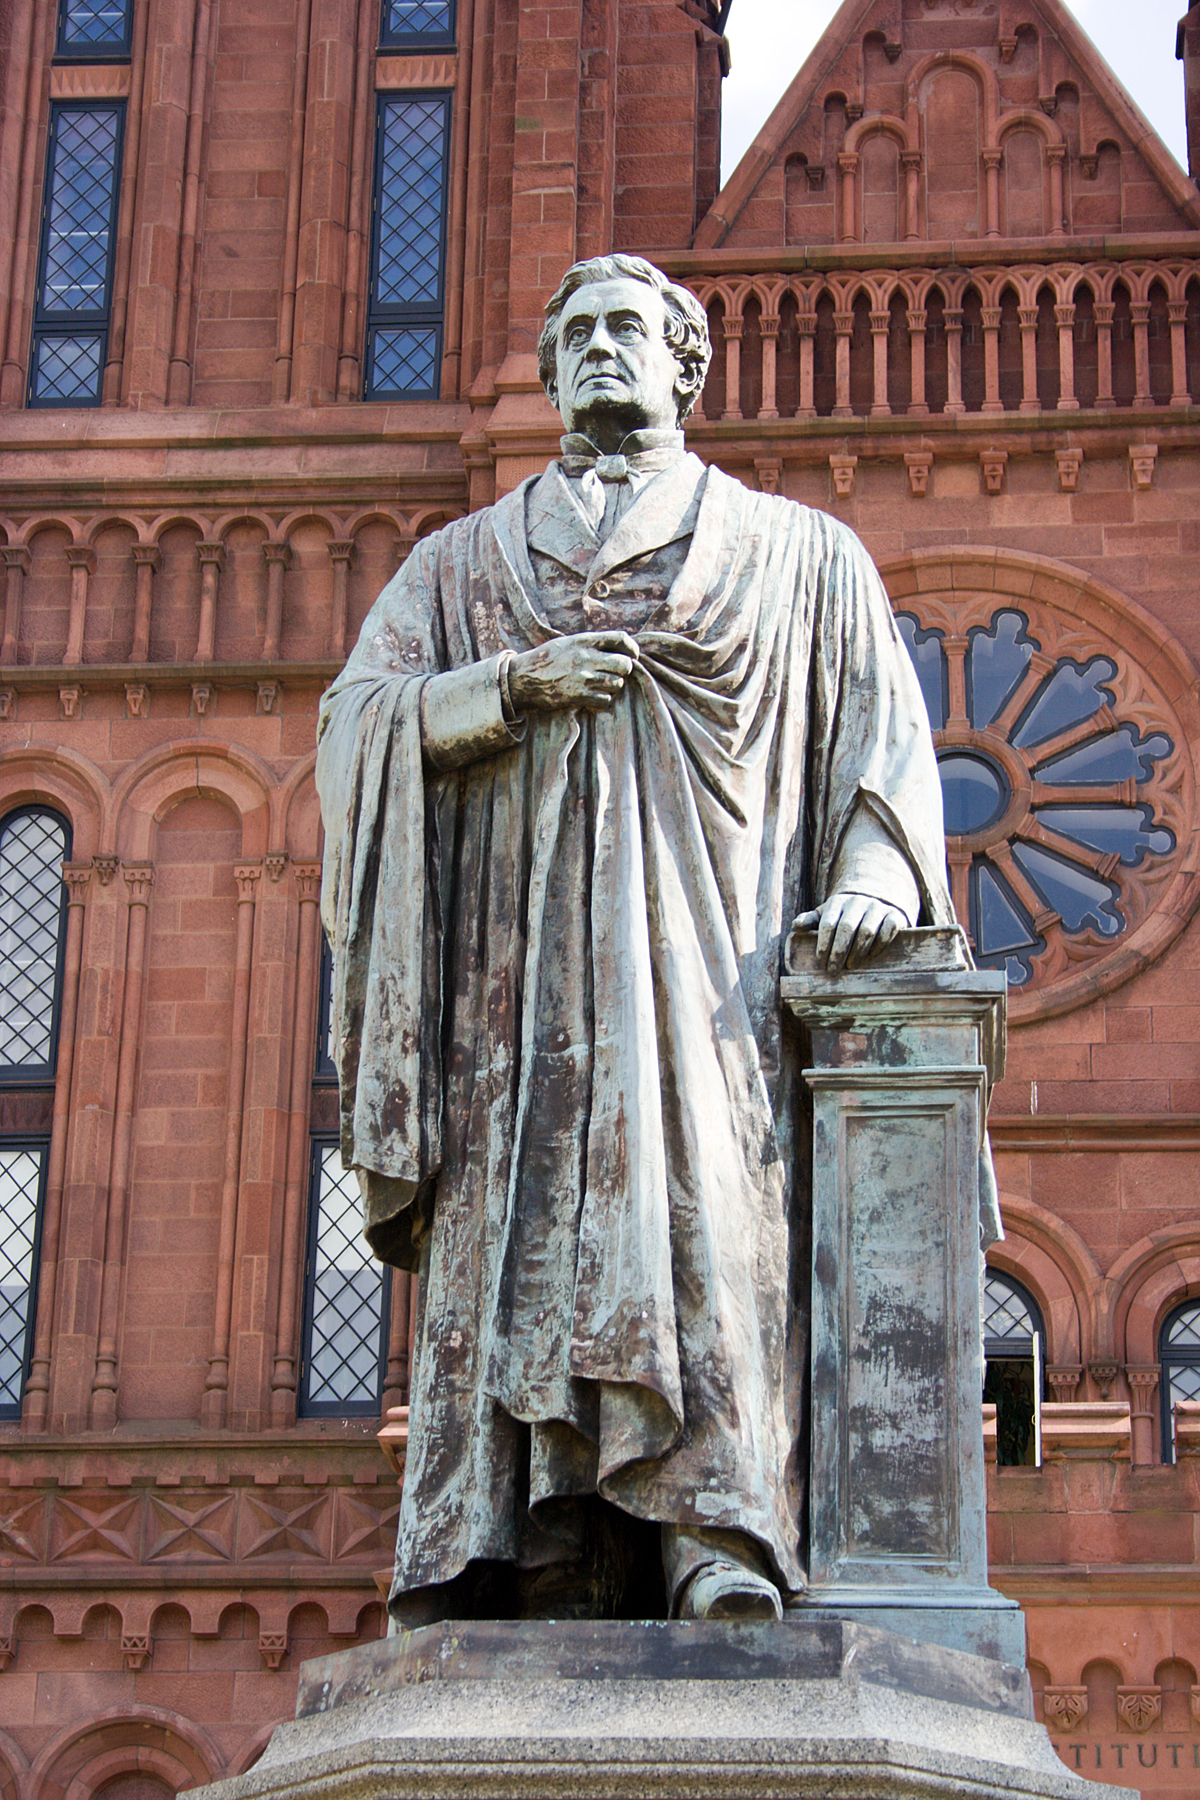 Statue of Joseph Henry, a Scottish-American physicist who served as the first Secretary of the Smithsonian Institution, in front of the Smithsonian Institution Building (Smithsonian Castle) in Washington, D.C. Photo taken by David Bjorgen on May 17, 2005